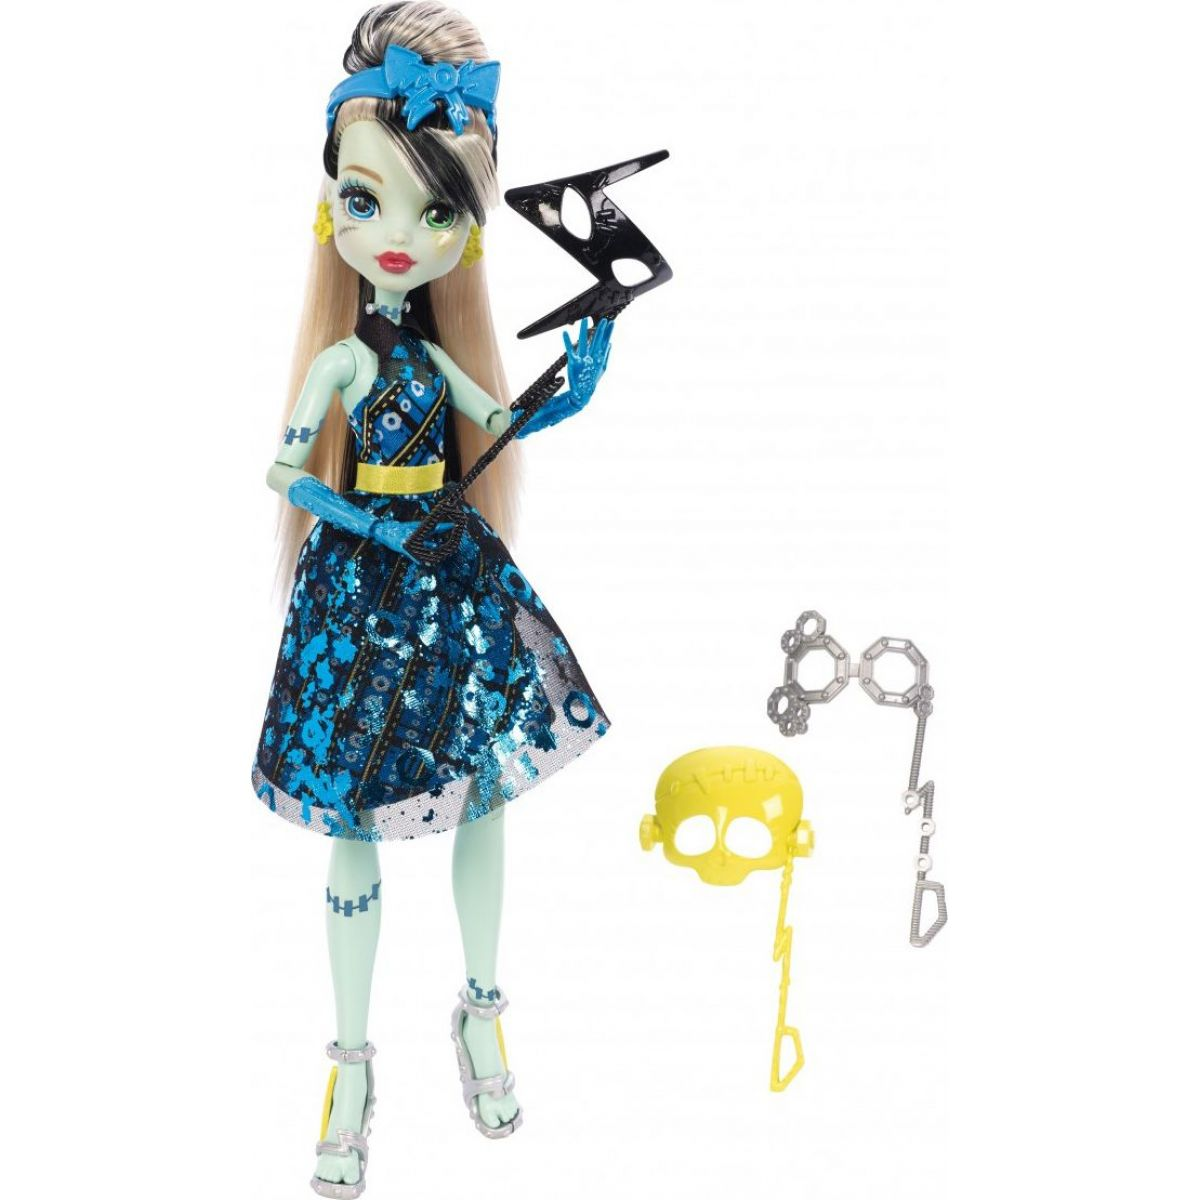 Monster High Monsterka s doplňky do fotokoutku - Frankie Stein DNX34